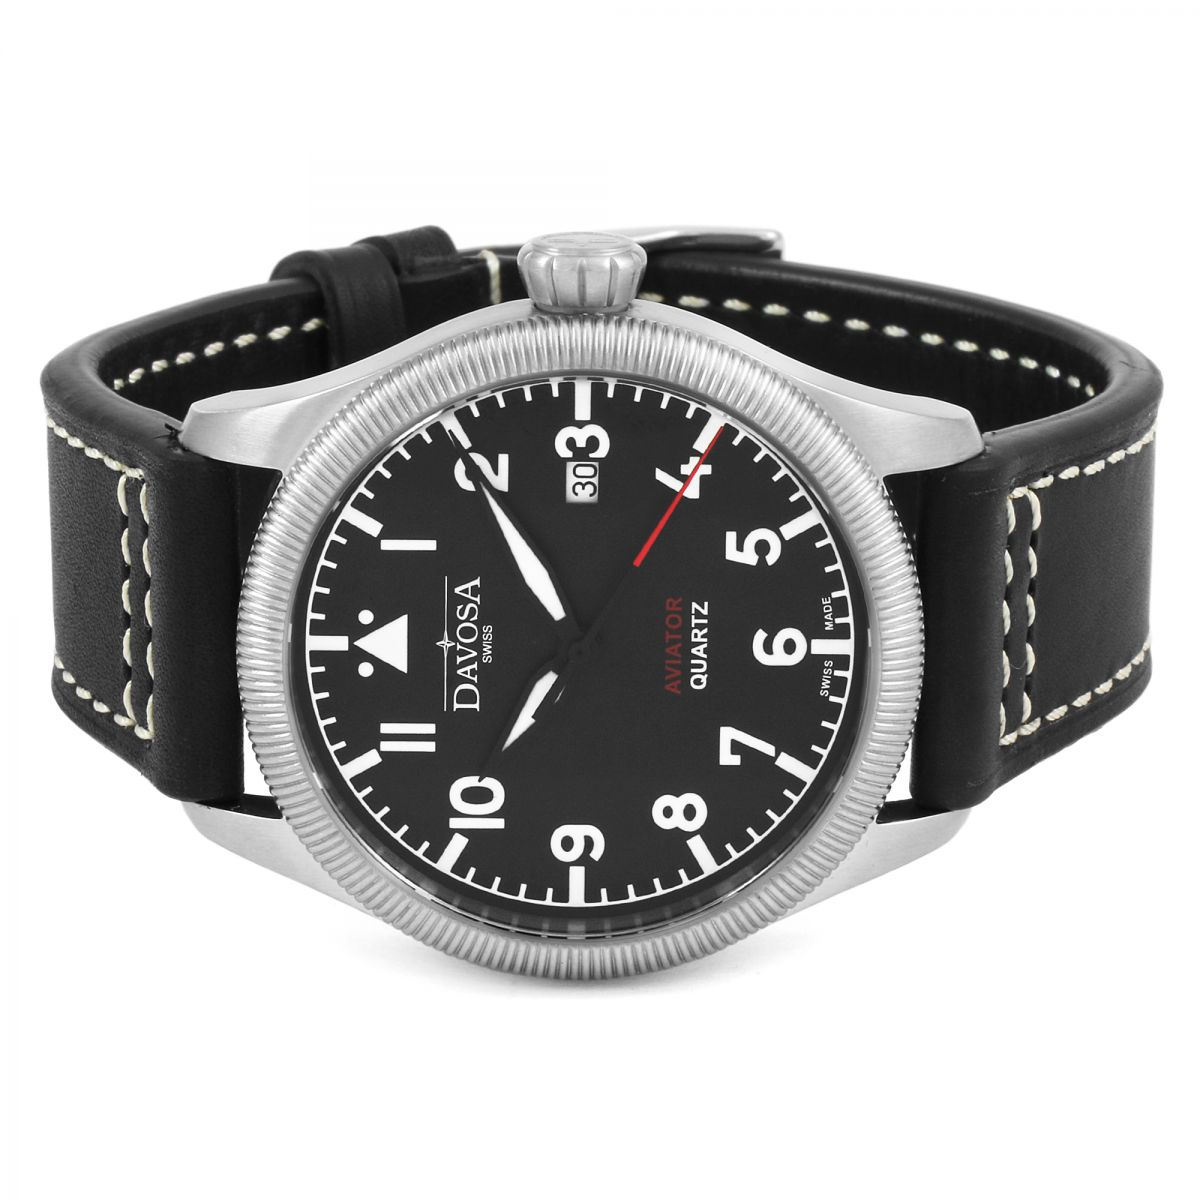 watch collections adz watches flieger aviator audaz buy quality chronograph